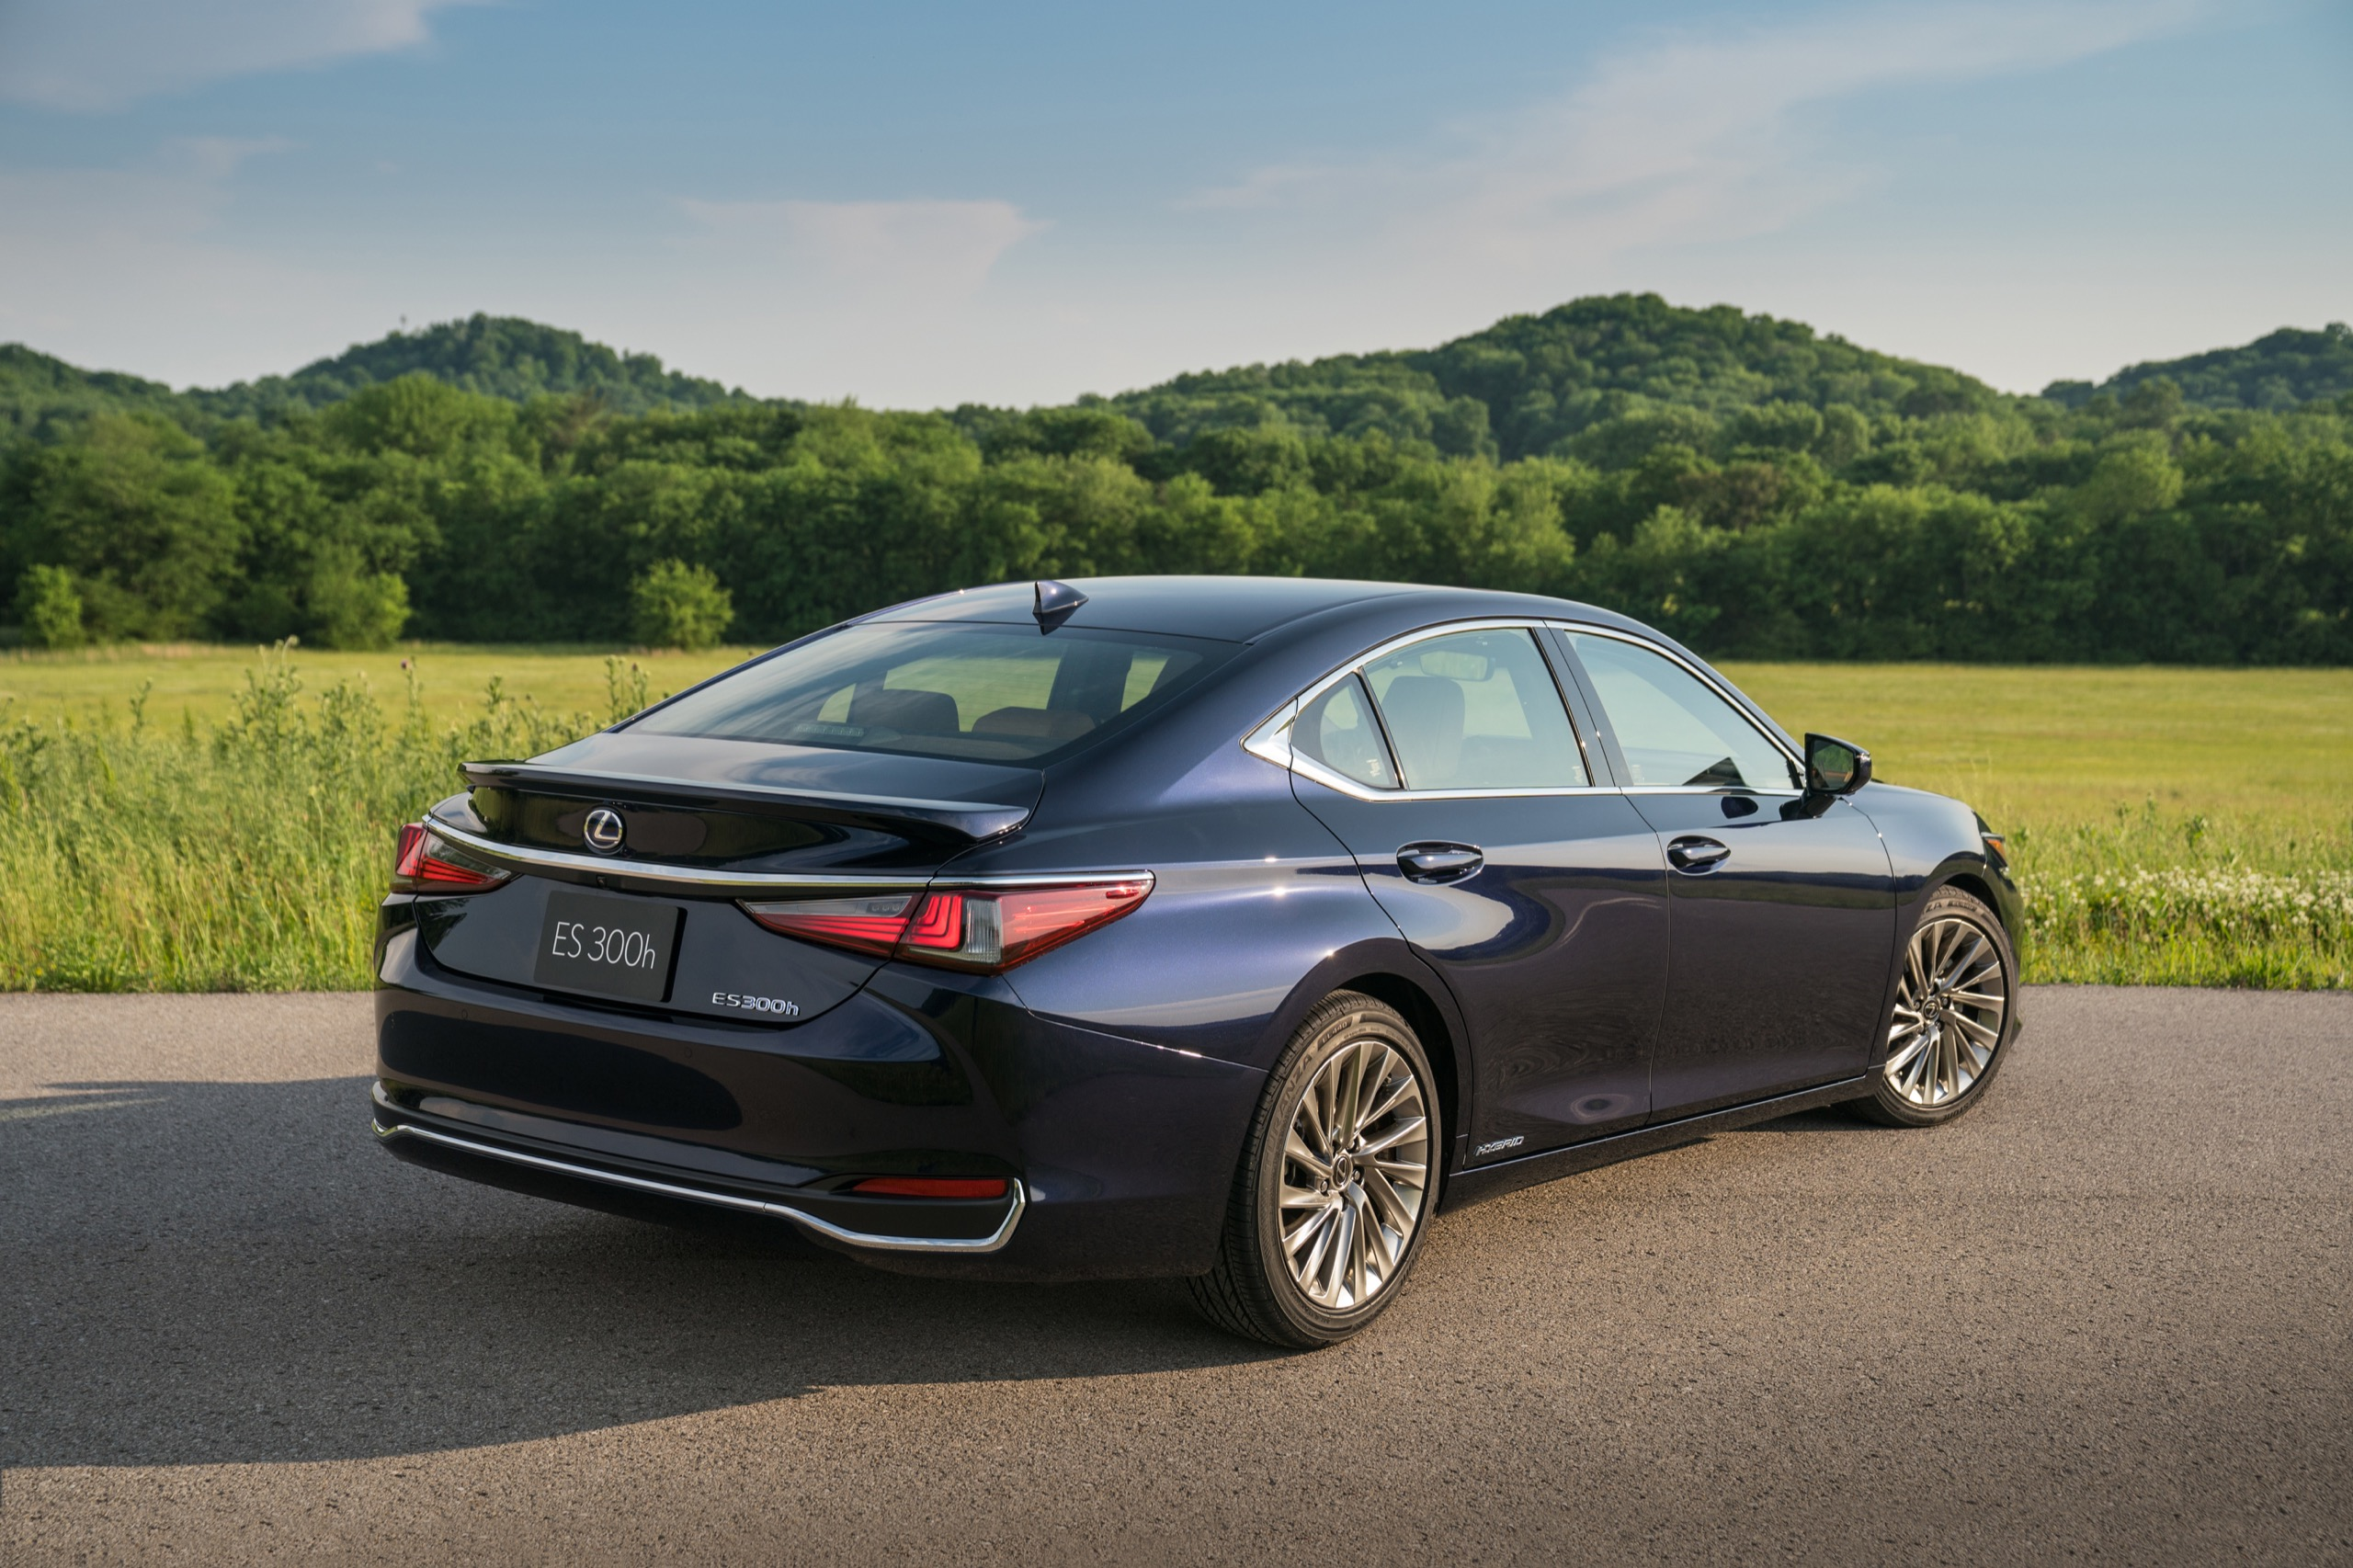 Photo Gallery: The 2019 Lexus ES 300h In Four Exterior